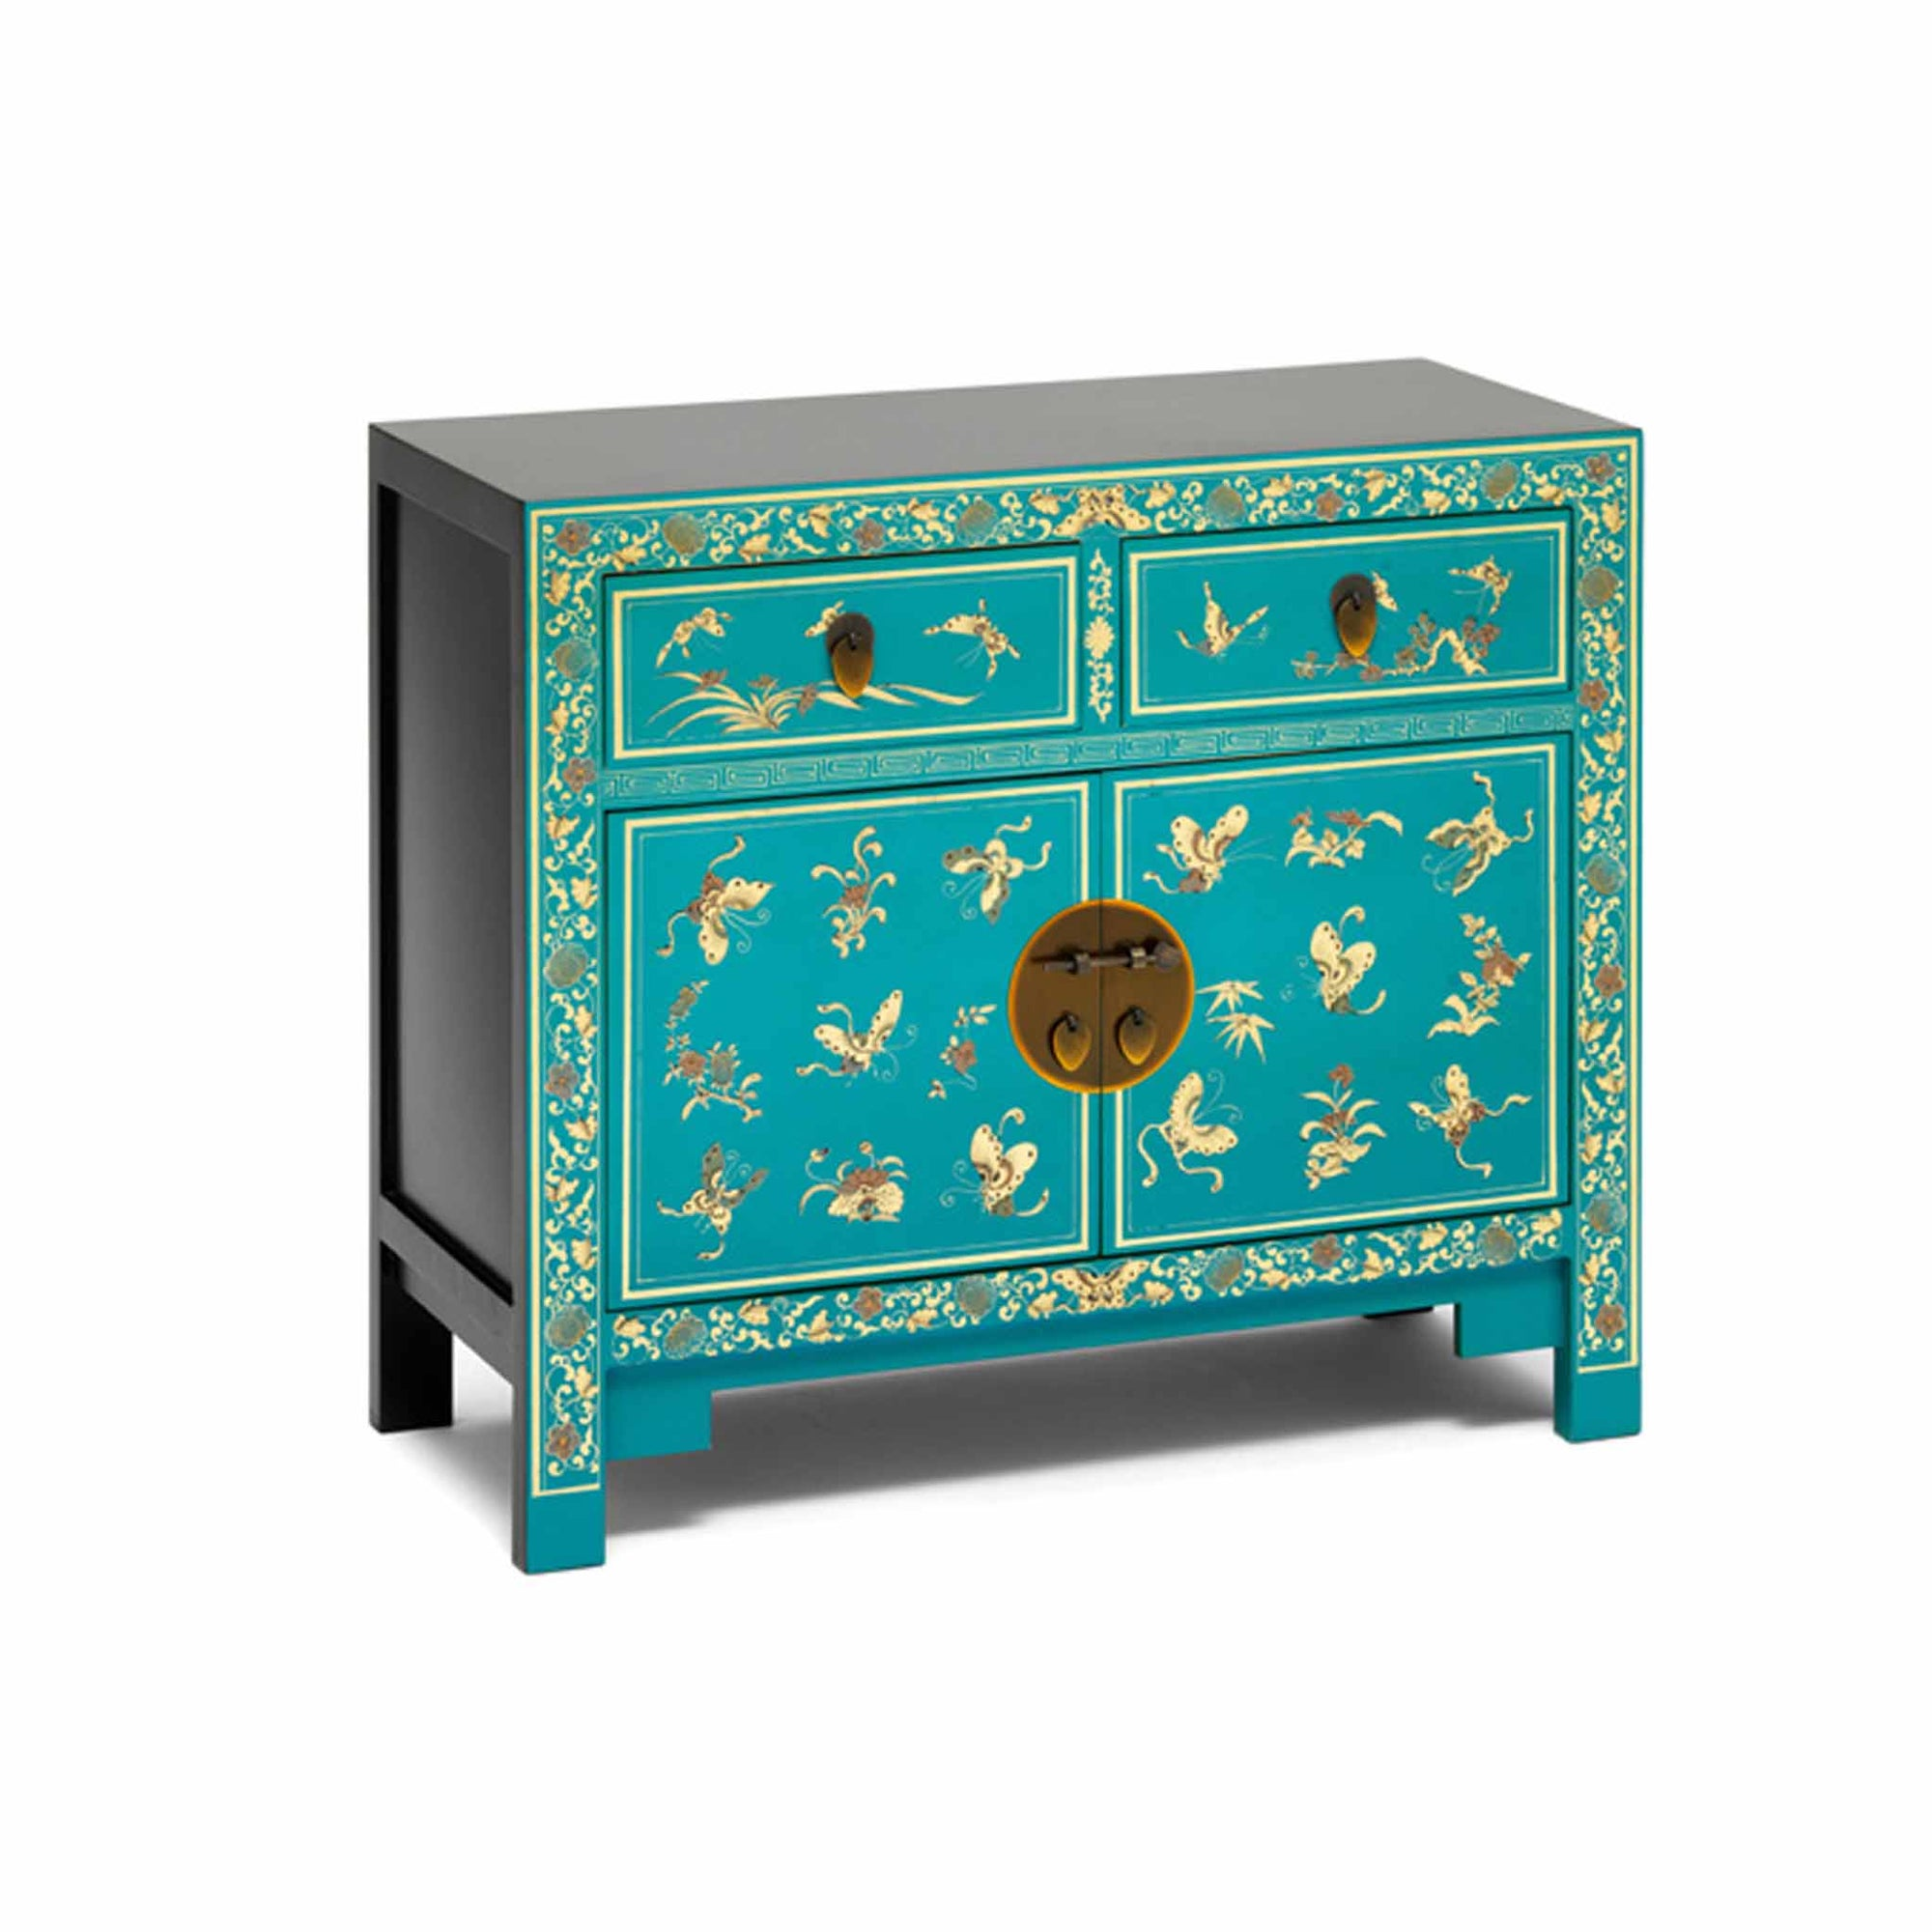 The Nine Schools Oriental Decorated Blue Sideboard by Roseland Furniture